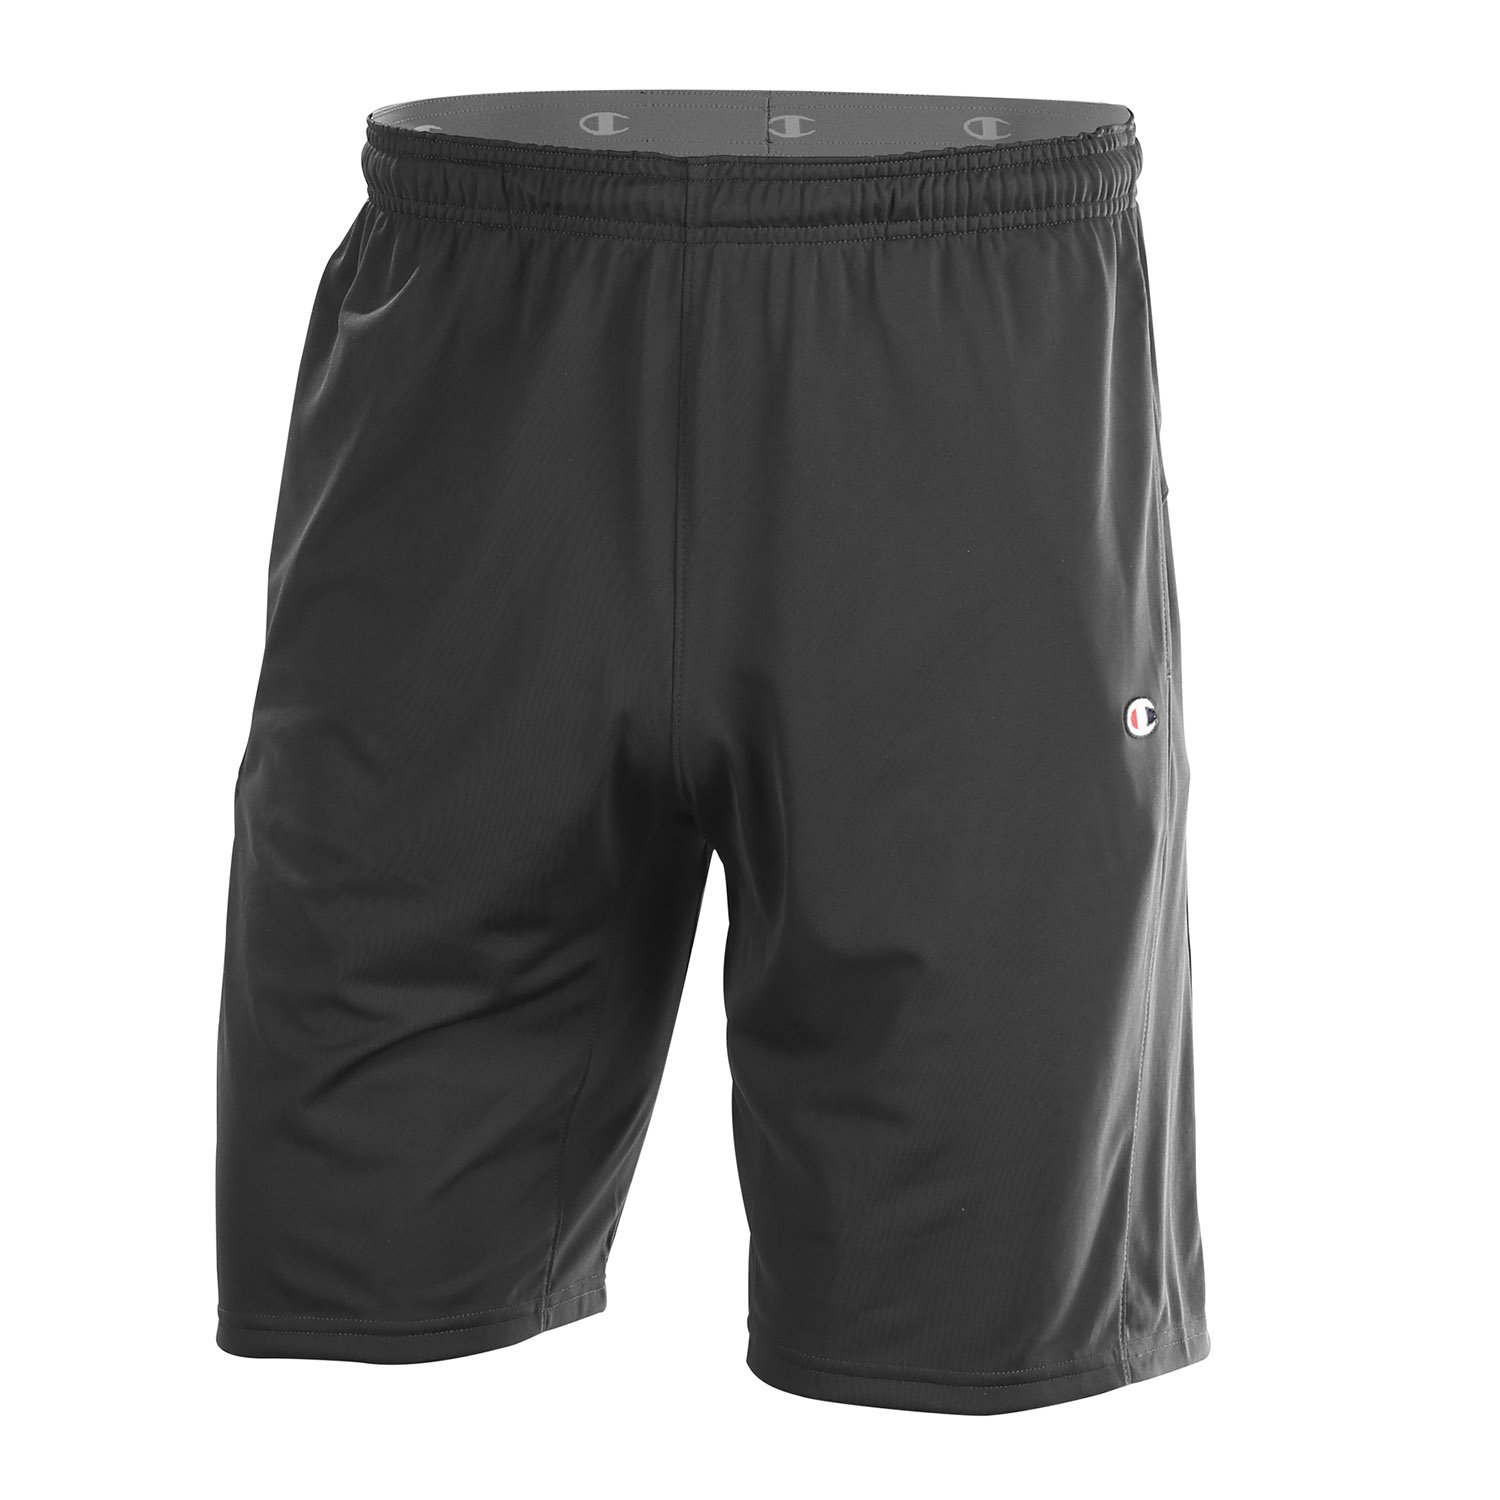 "Champion Double Dry 10"" Shorts with Pockets"